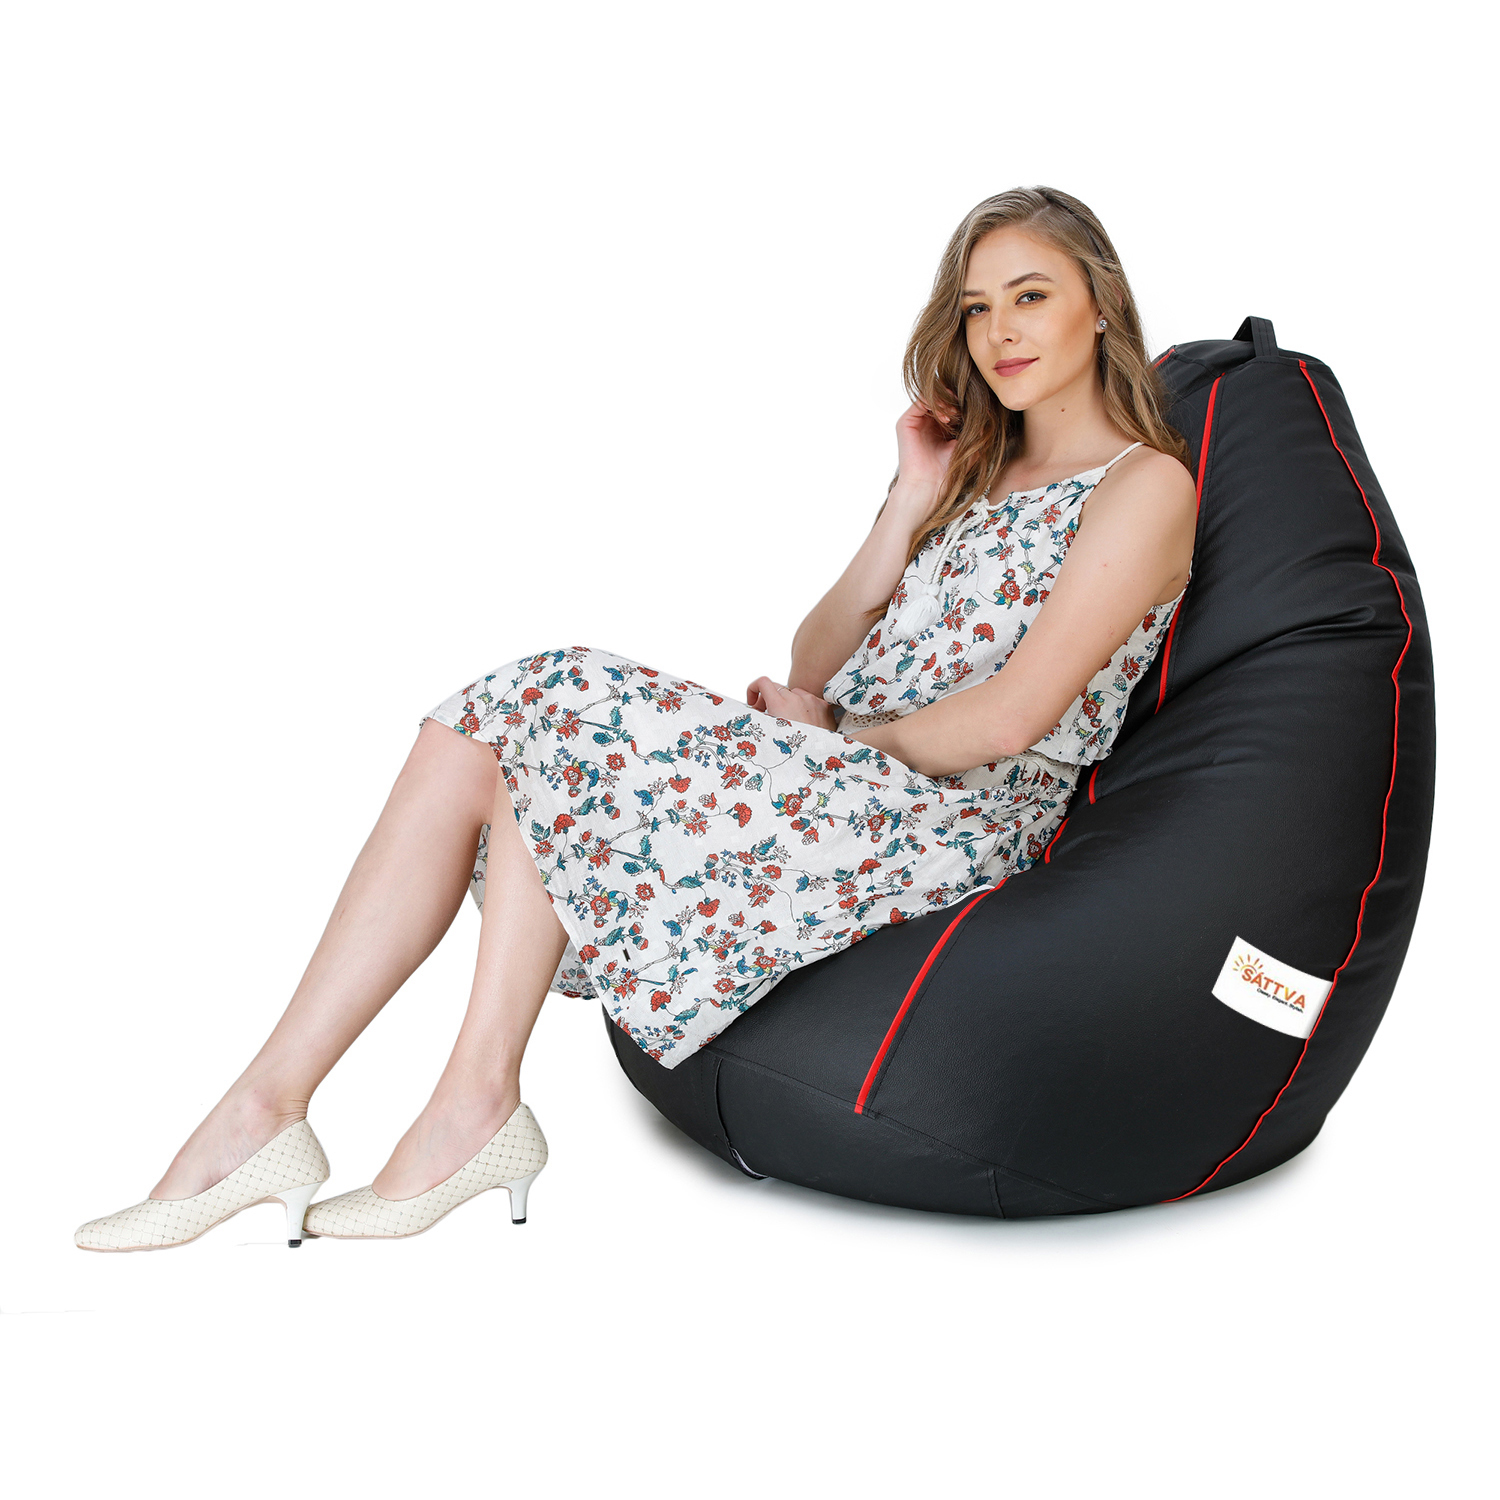 Sattva Classic XXL Bean Bag Filled (with Beans) - Black With Red Piping